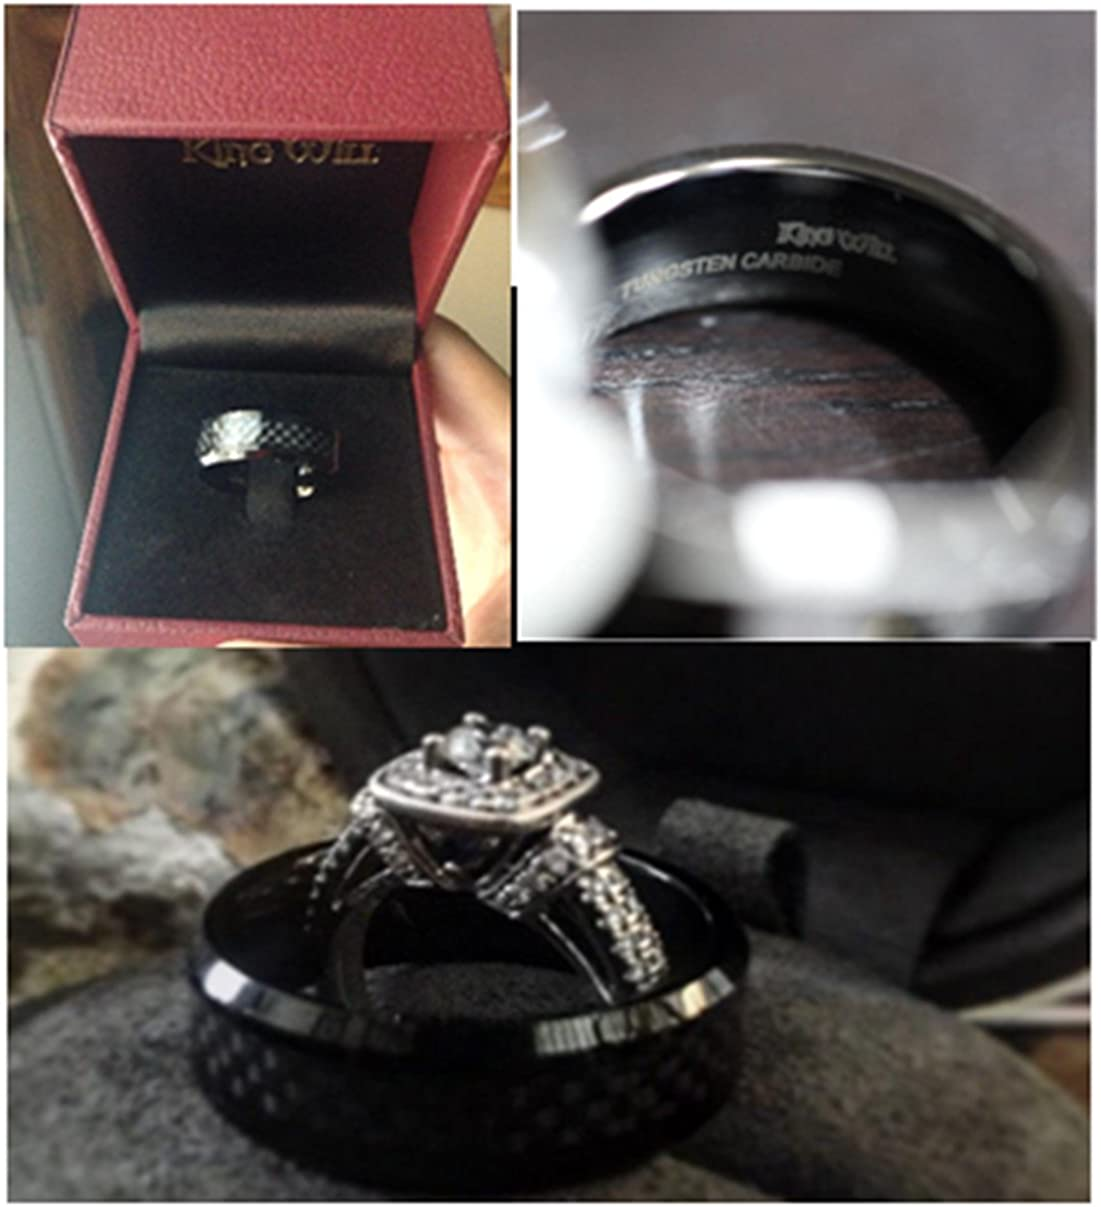 King Will GENTLEMENT 8mm Black Carbon Fiber Inlay Tungsten Carbide Ring Polished Finish Edges Comfort Fit